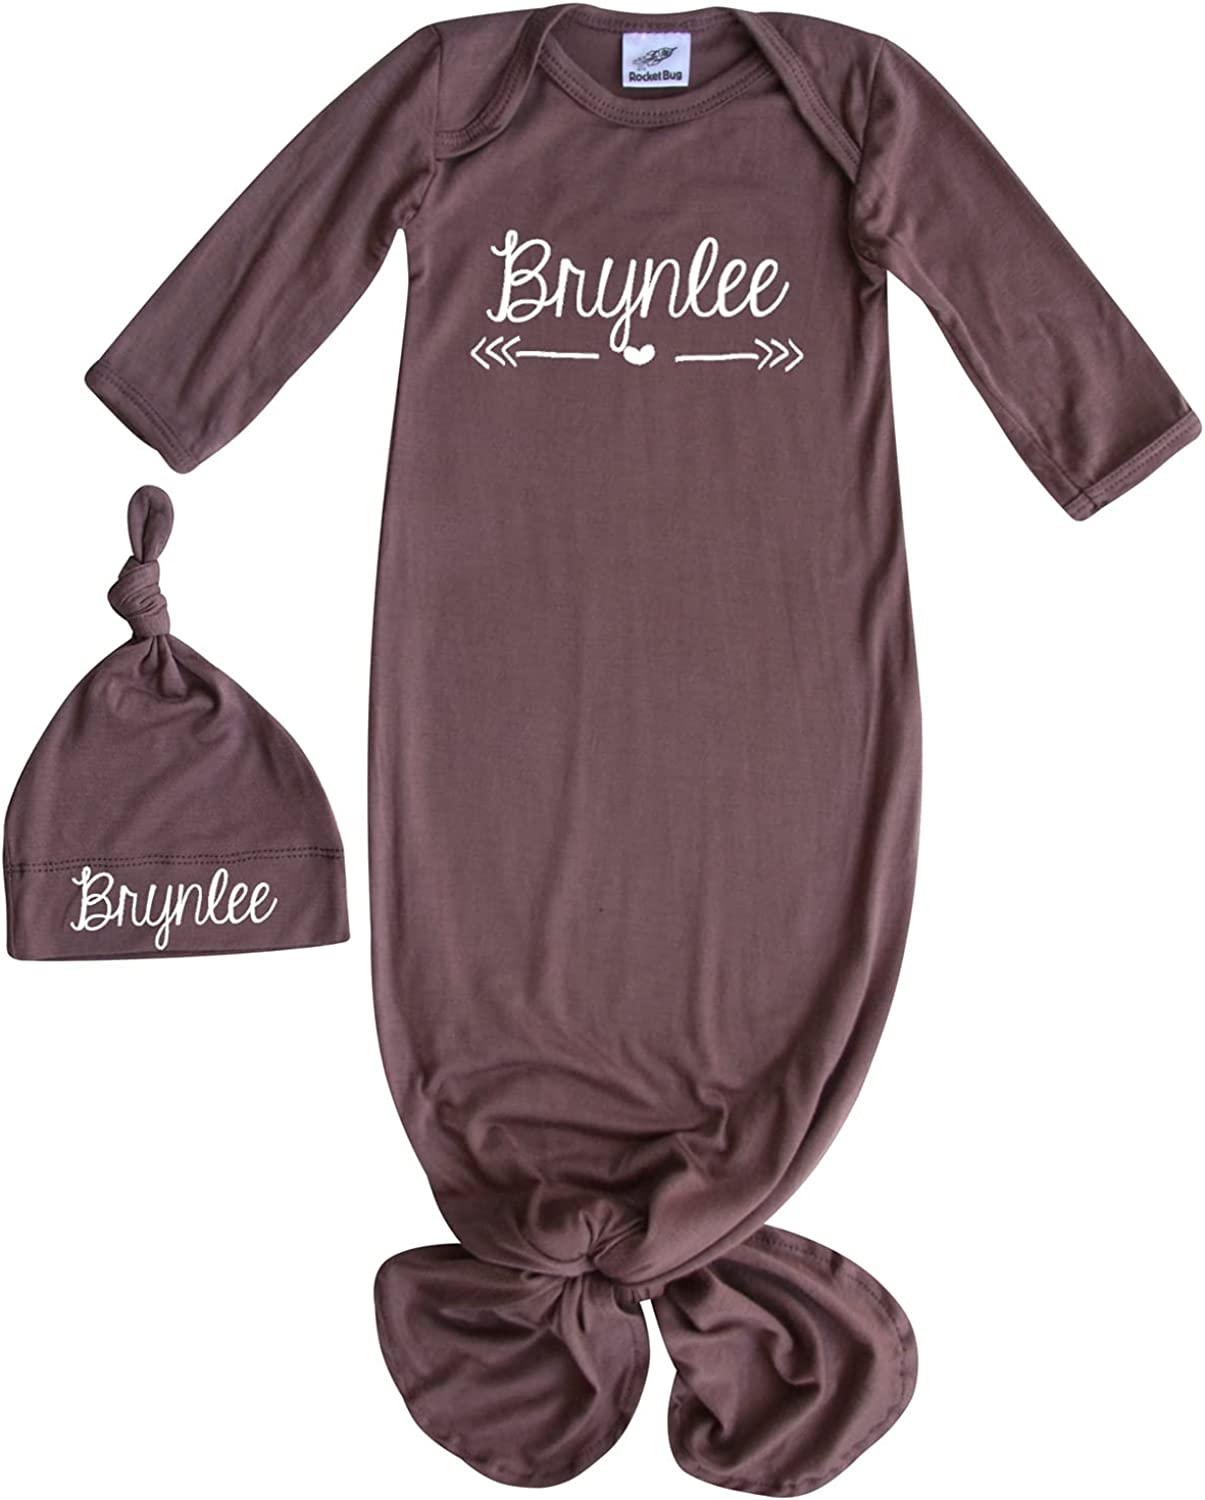 2021 Ranking TOP14 Silky Knotted Baby Gown with Personalized Boys Hat G